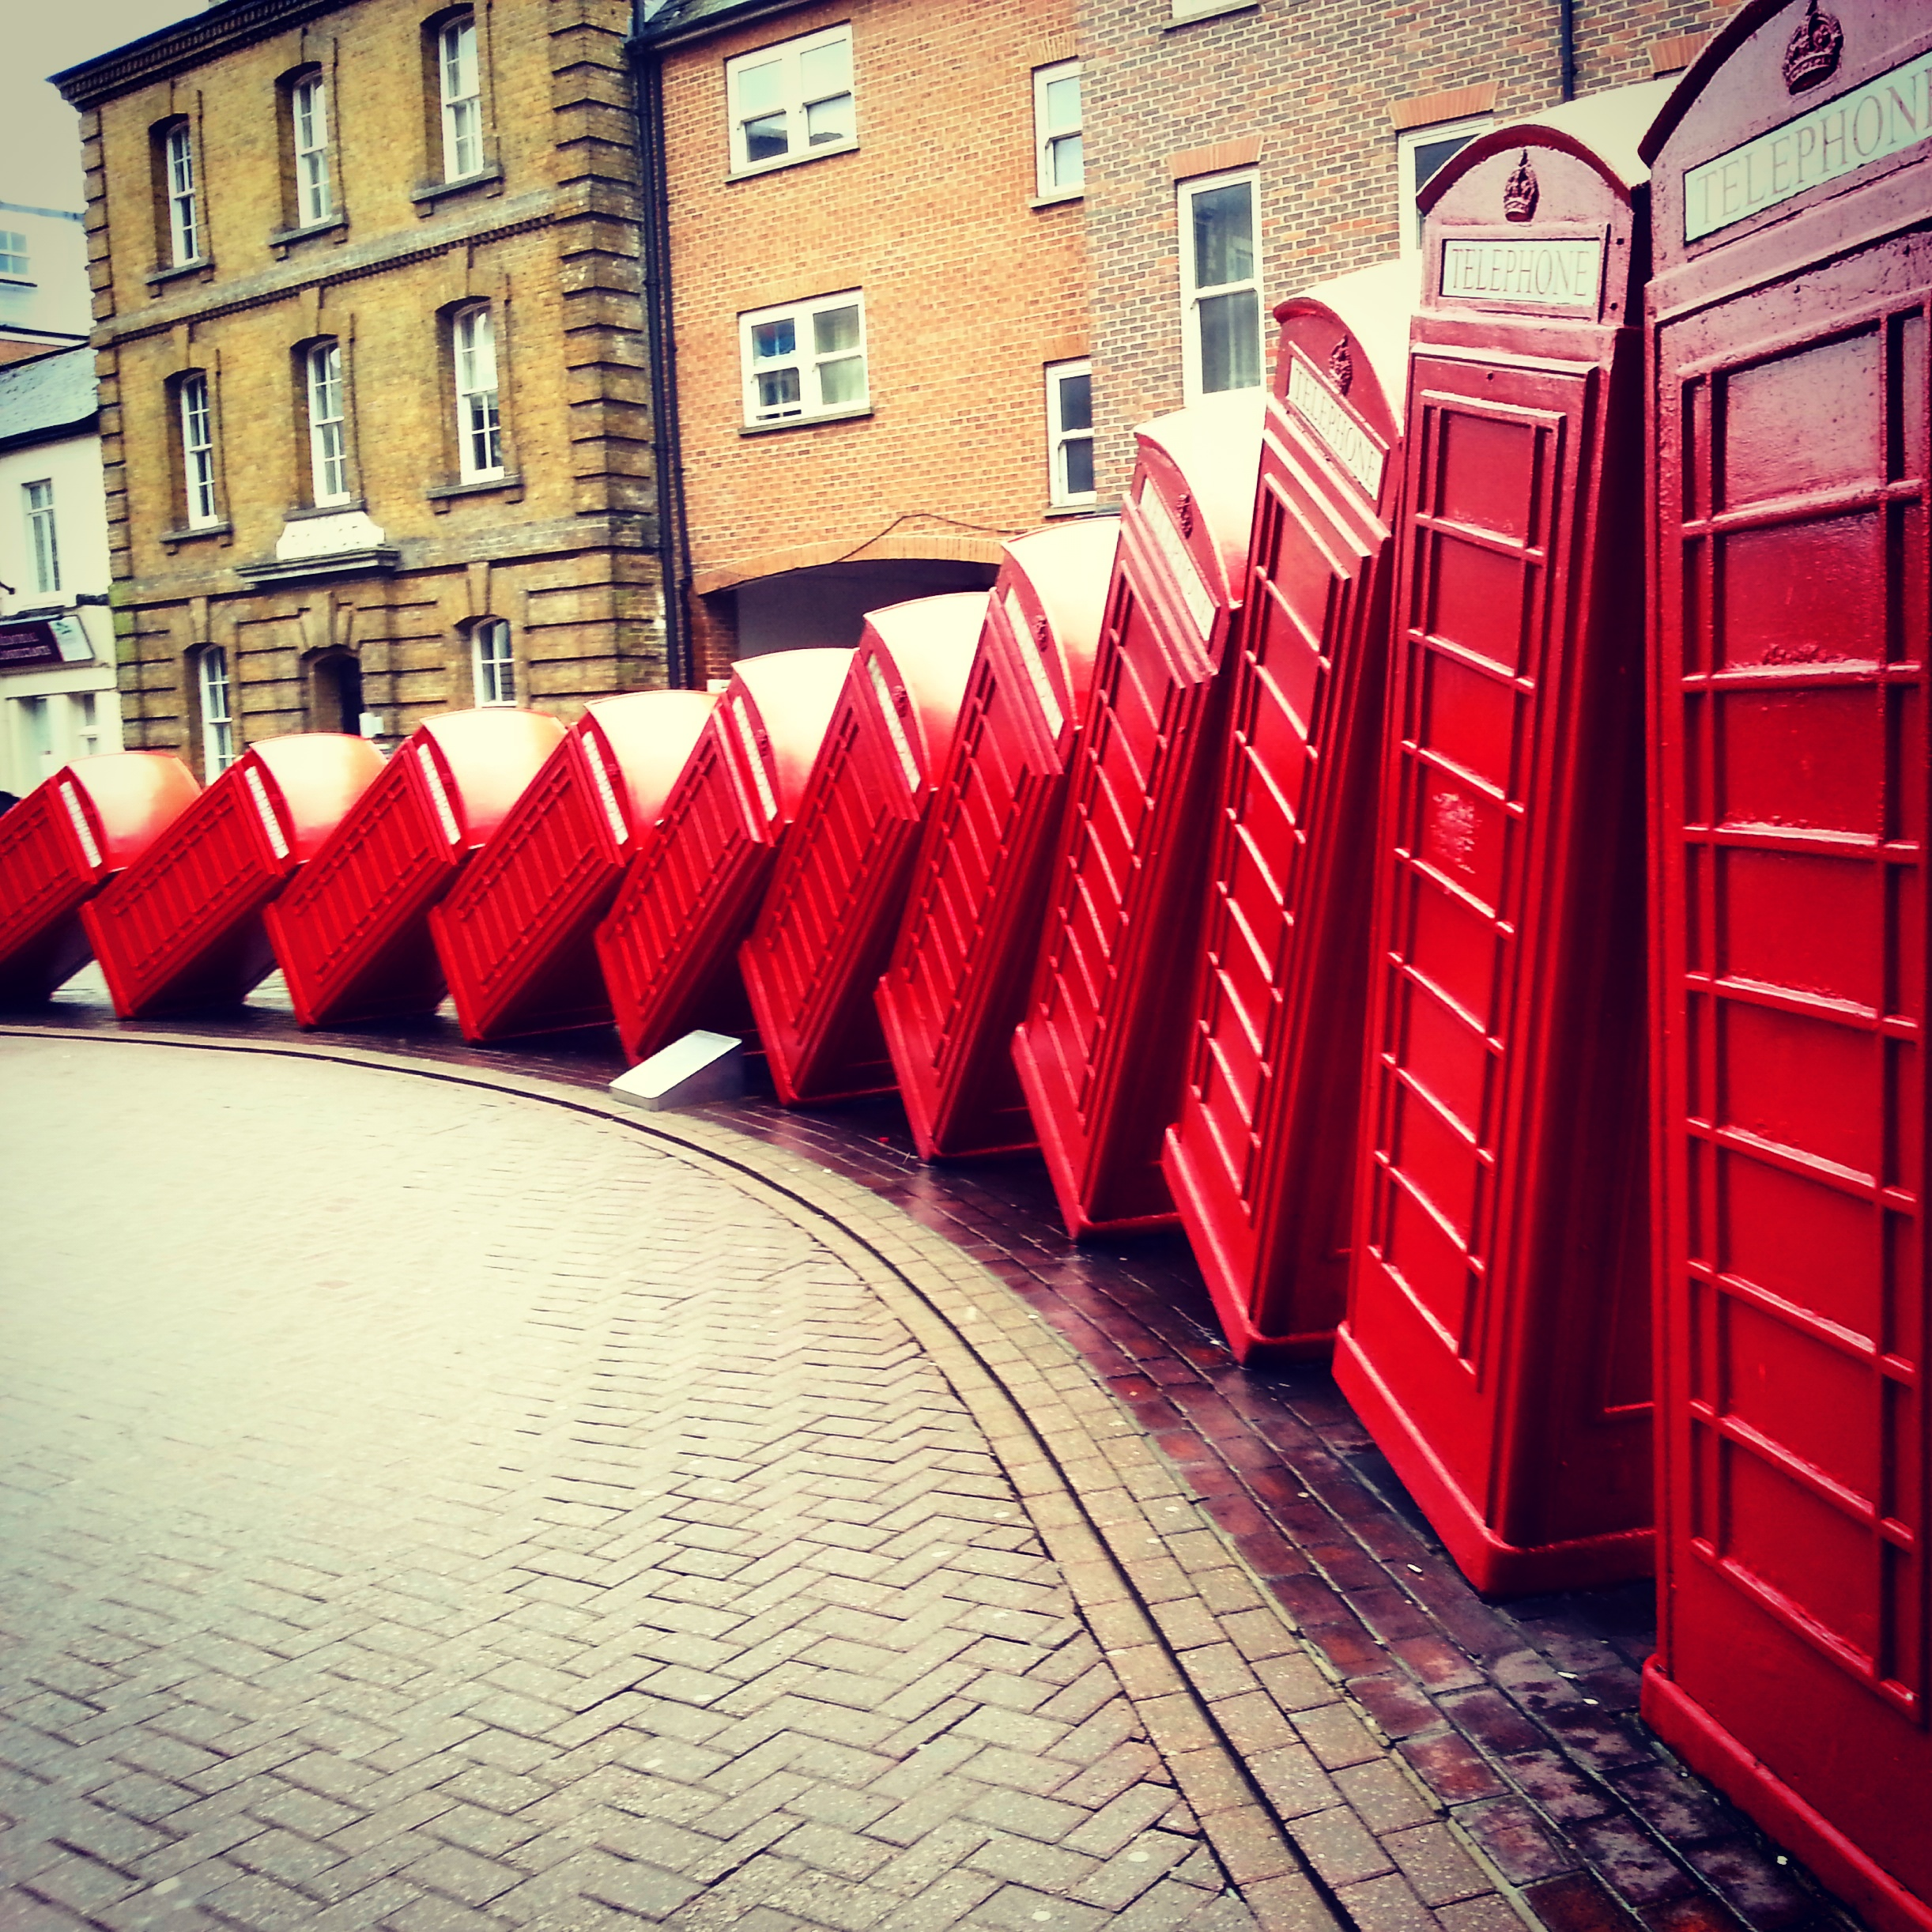 Leaning telephone boxes - art